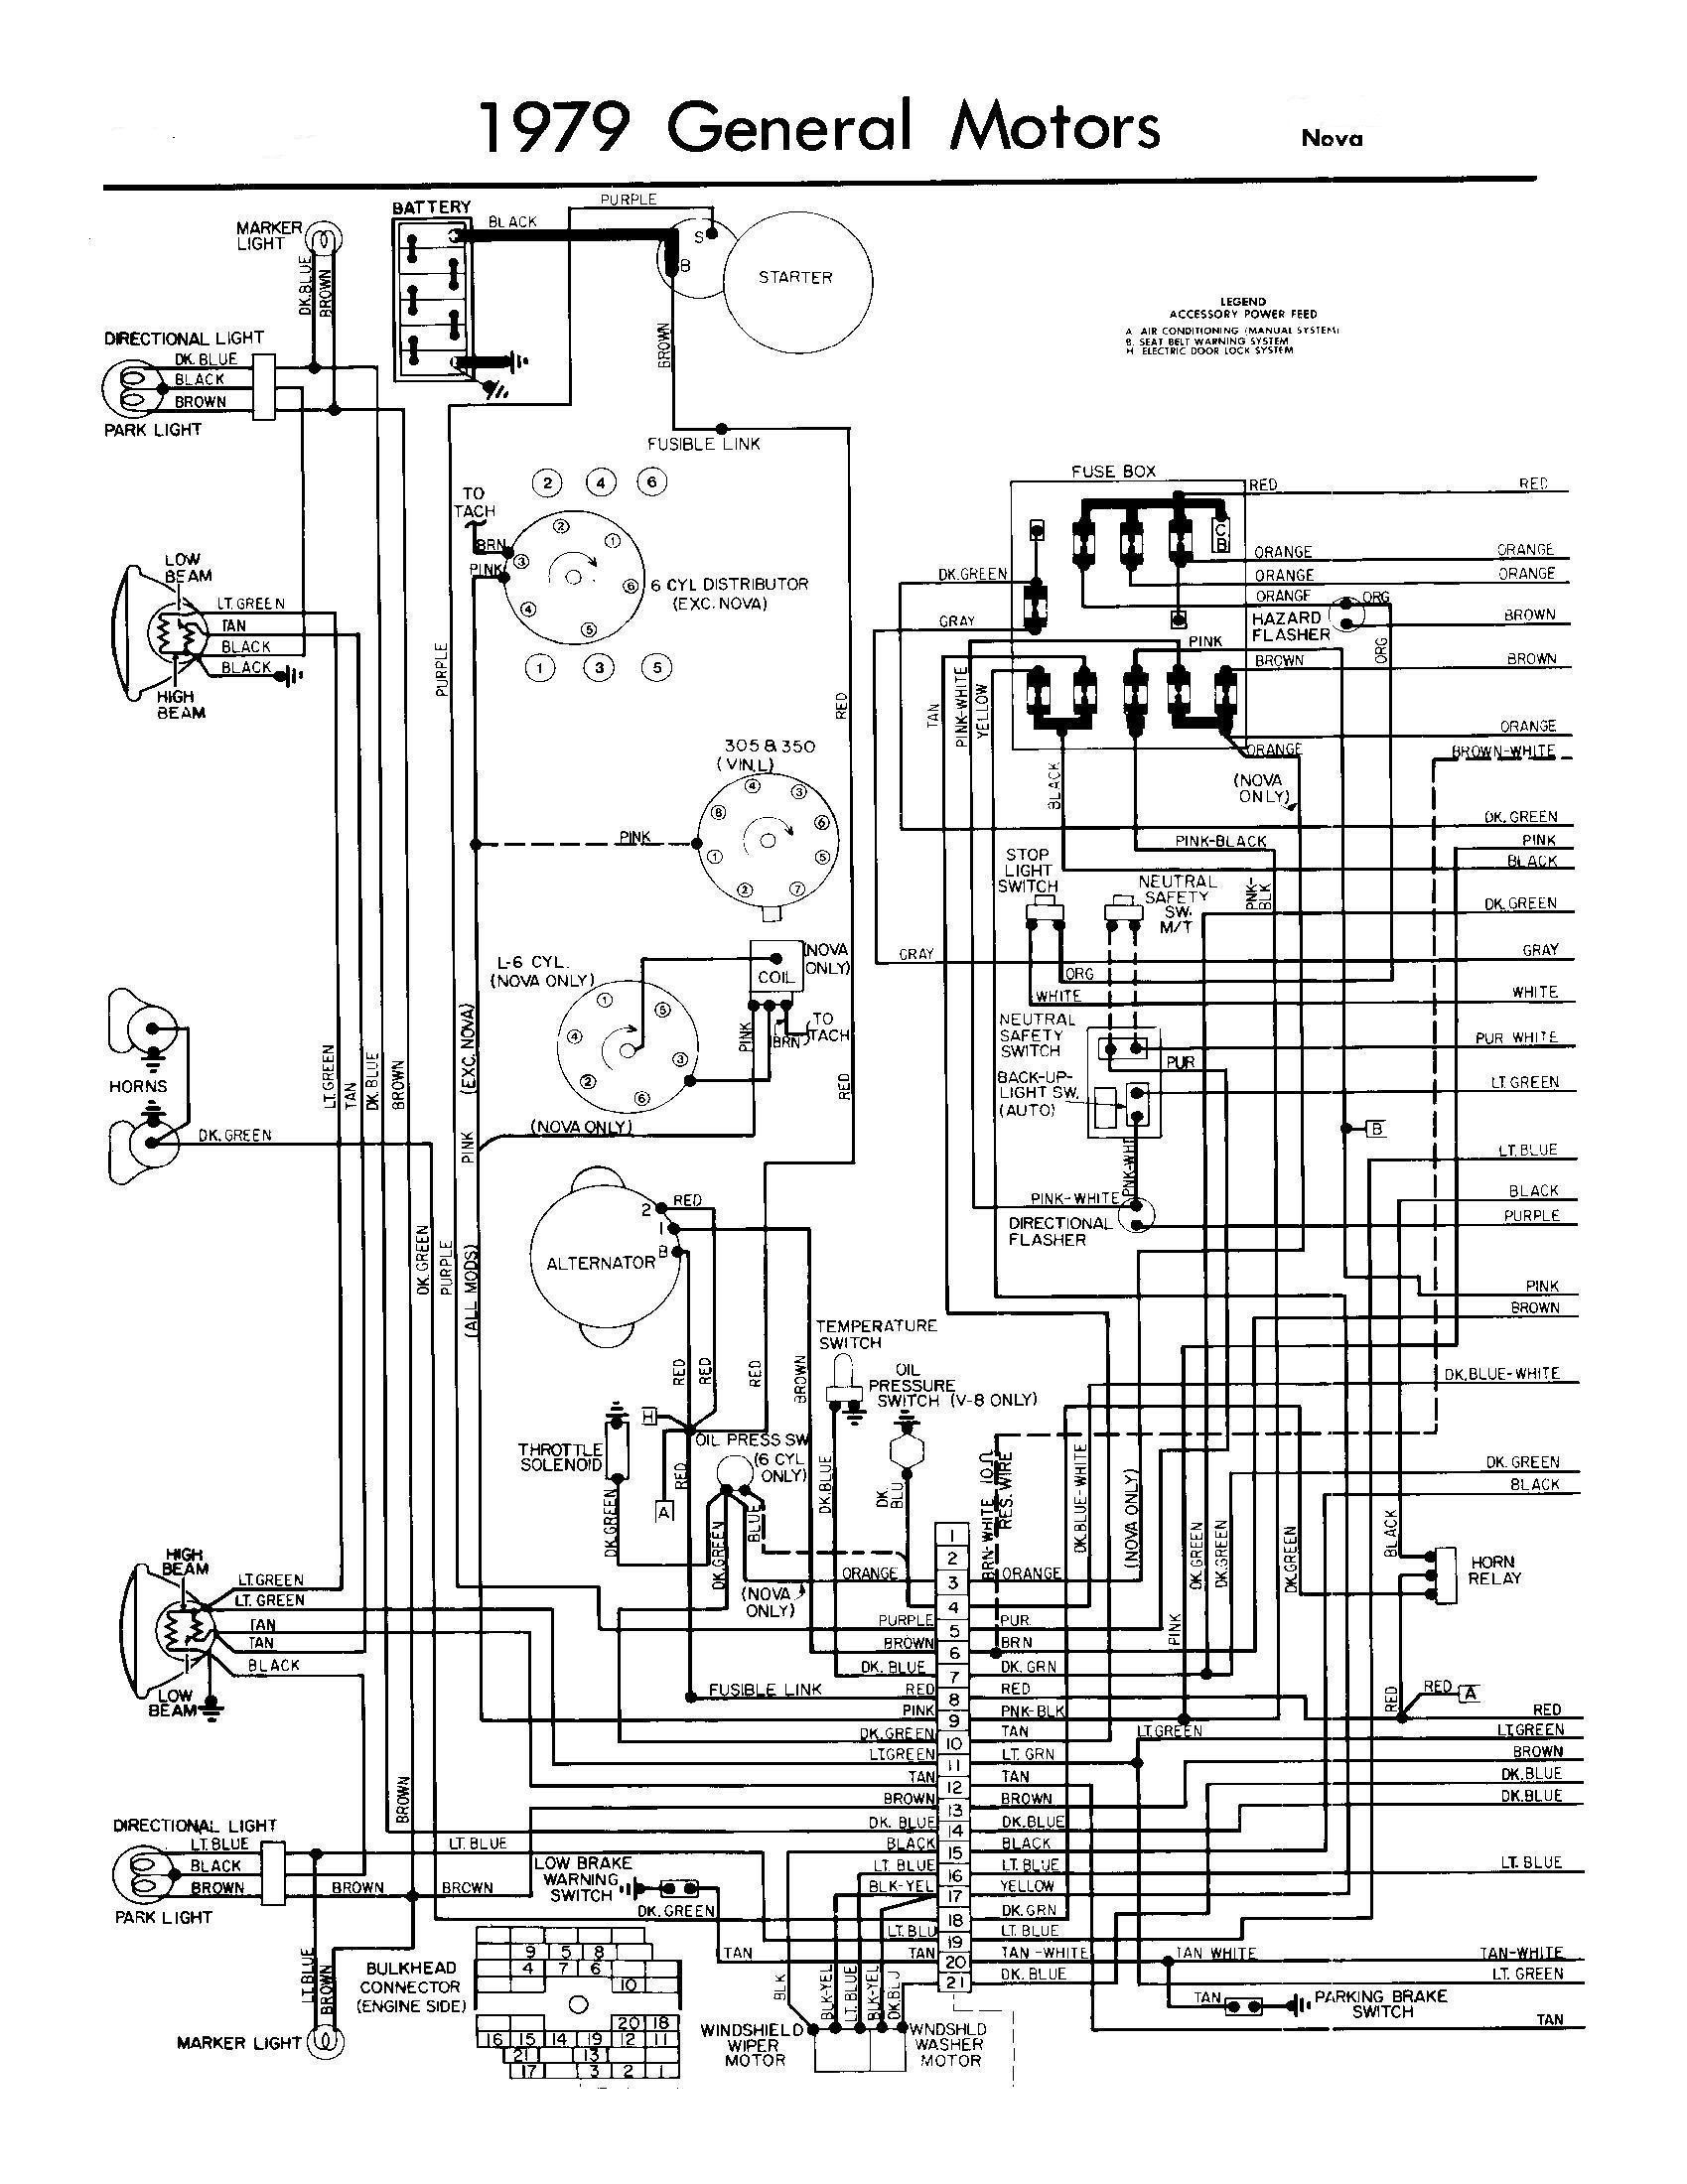 Bose Lifier Wiring Diagram On 2015 Ford F 350 Upfitter Wiring Diagram